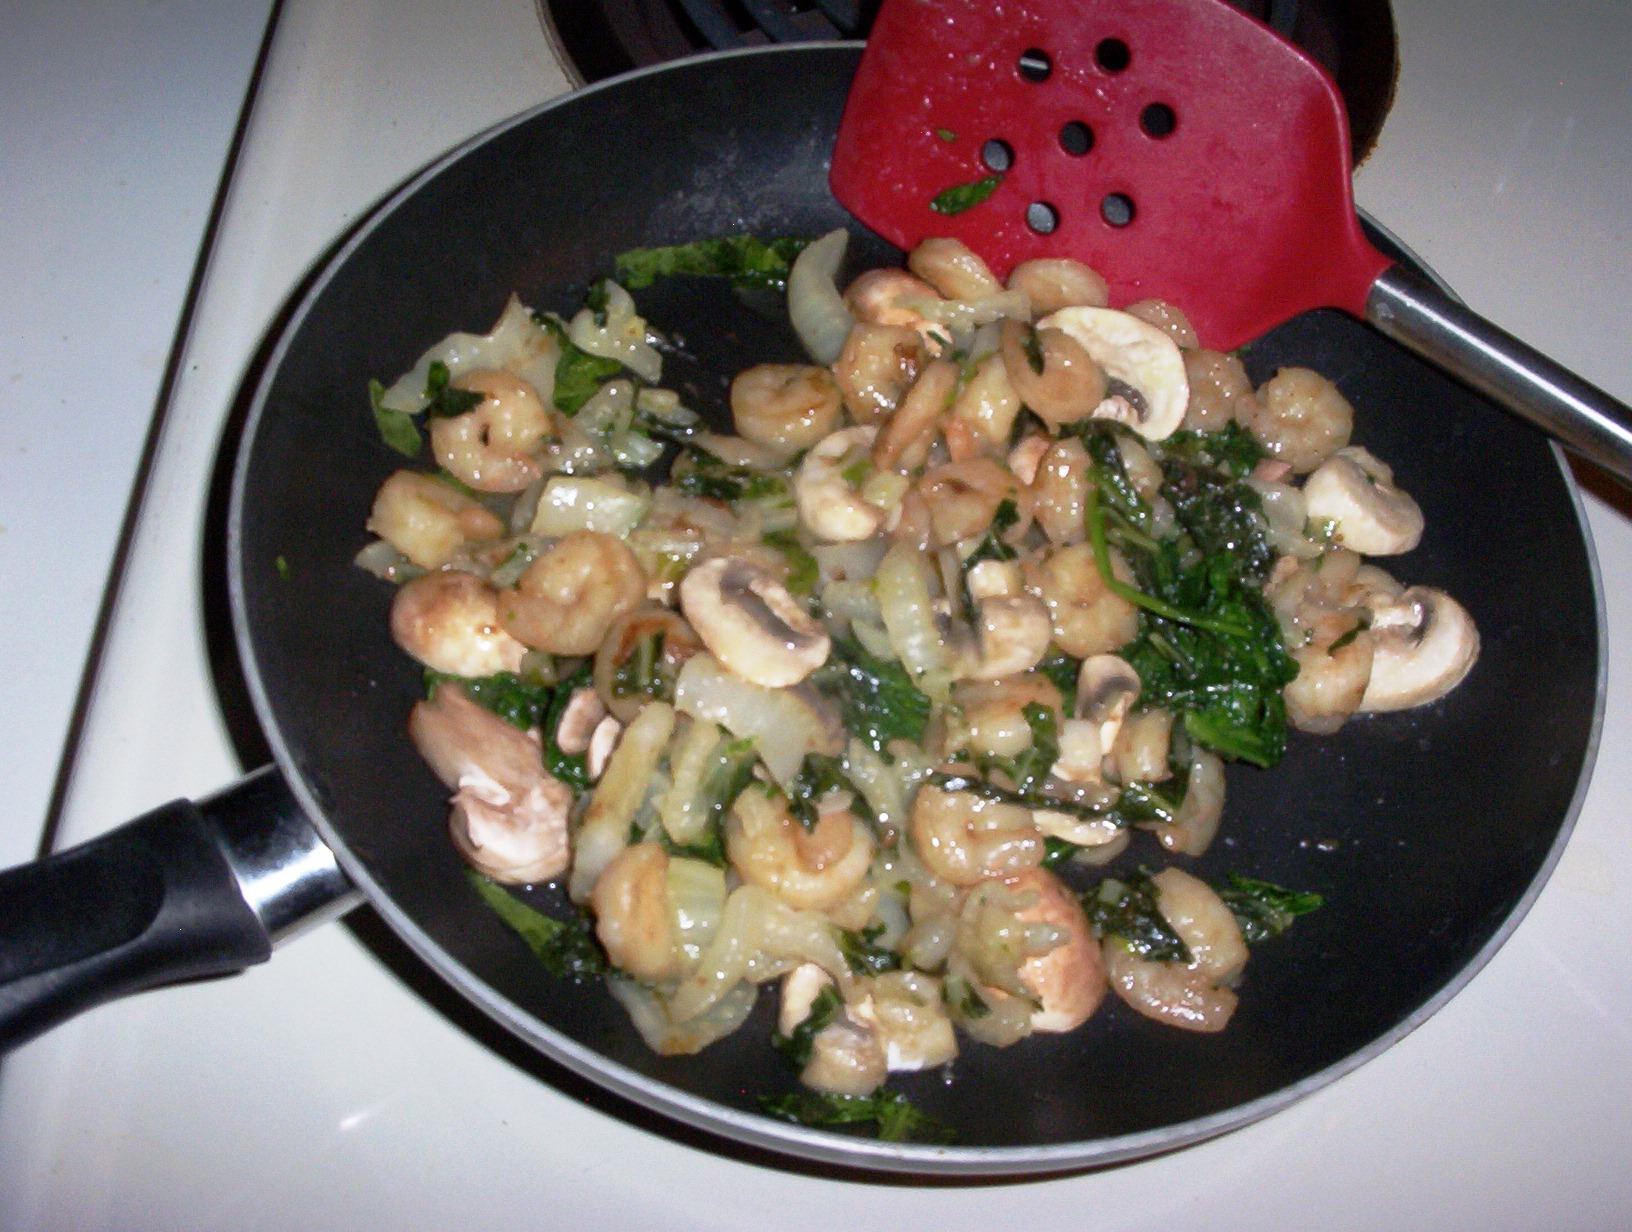 Shrimp Stir-Fry with Bok Choy, Mushrooms and Spinach